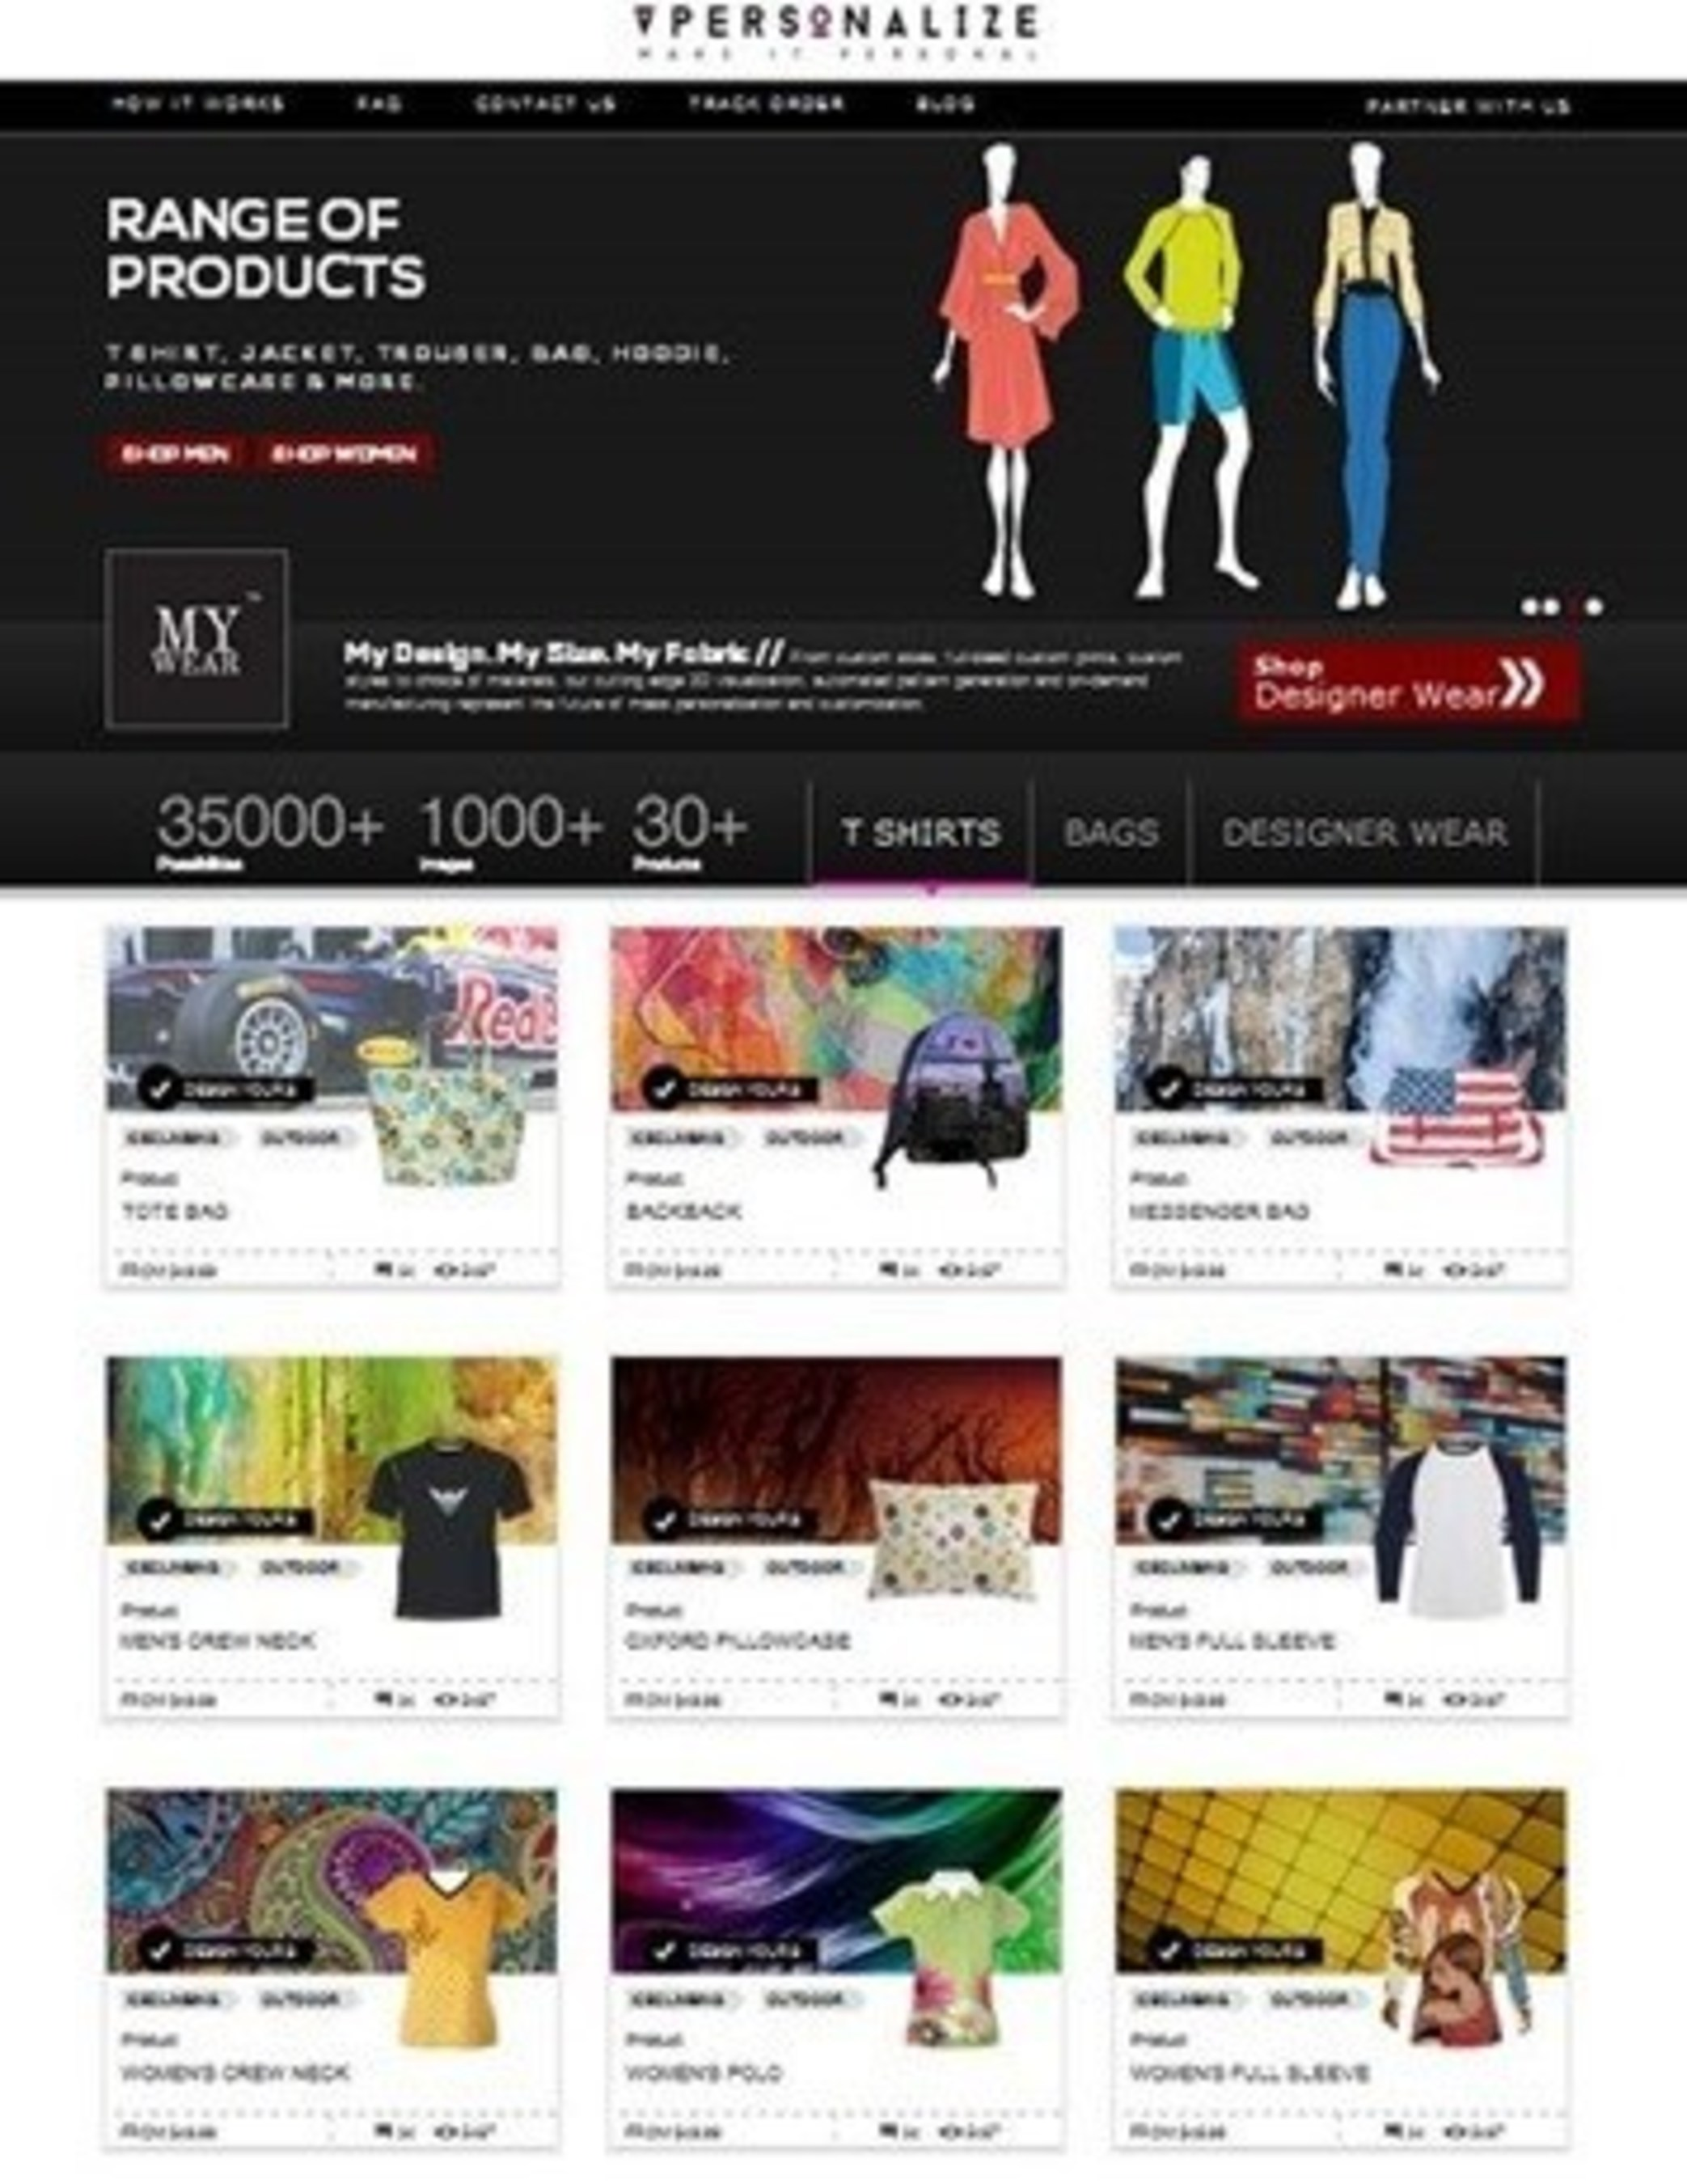 Fashion Designers Turn to vPersonalize.com for Making Exclusive Apparel and Accessories in Small